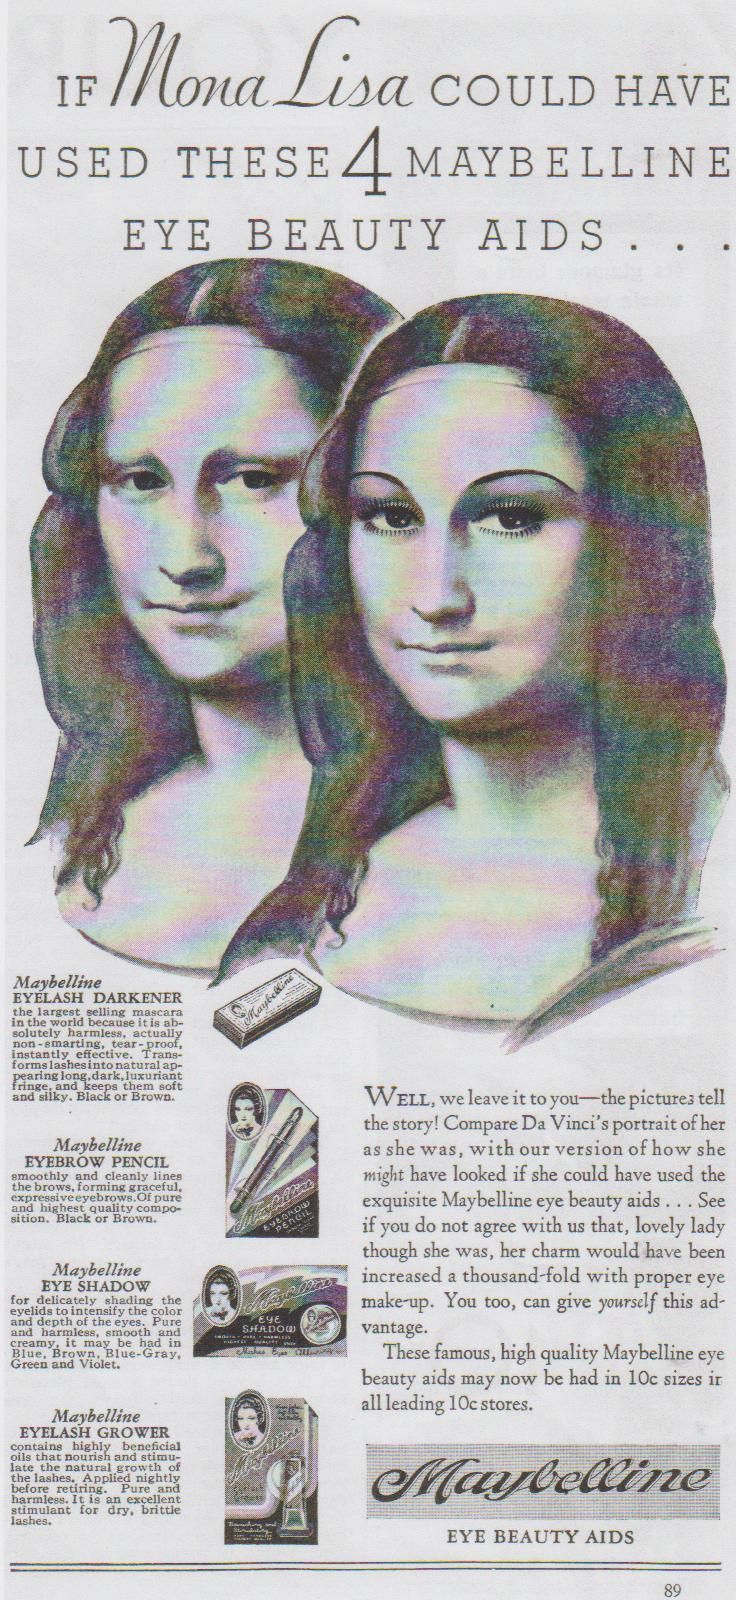 Maybelline eye makeup ad from the 1930's - trying to make women feel inadequate for generations.